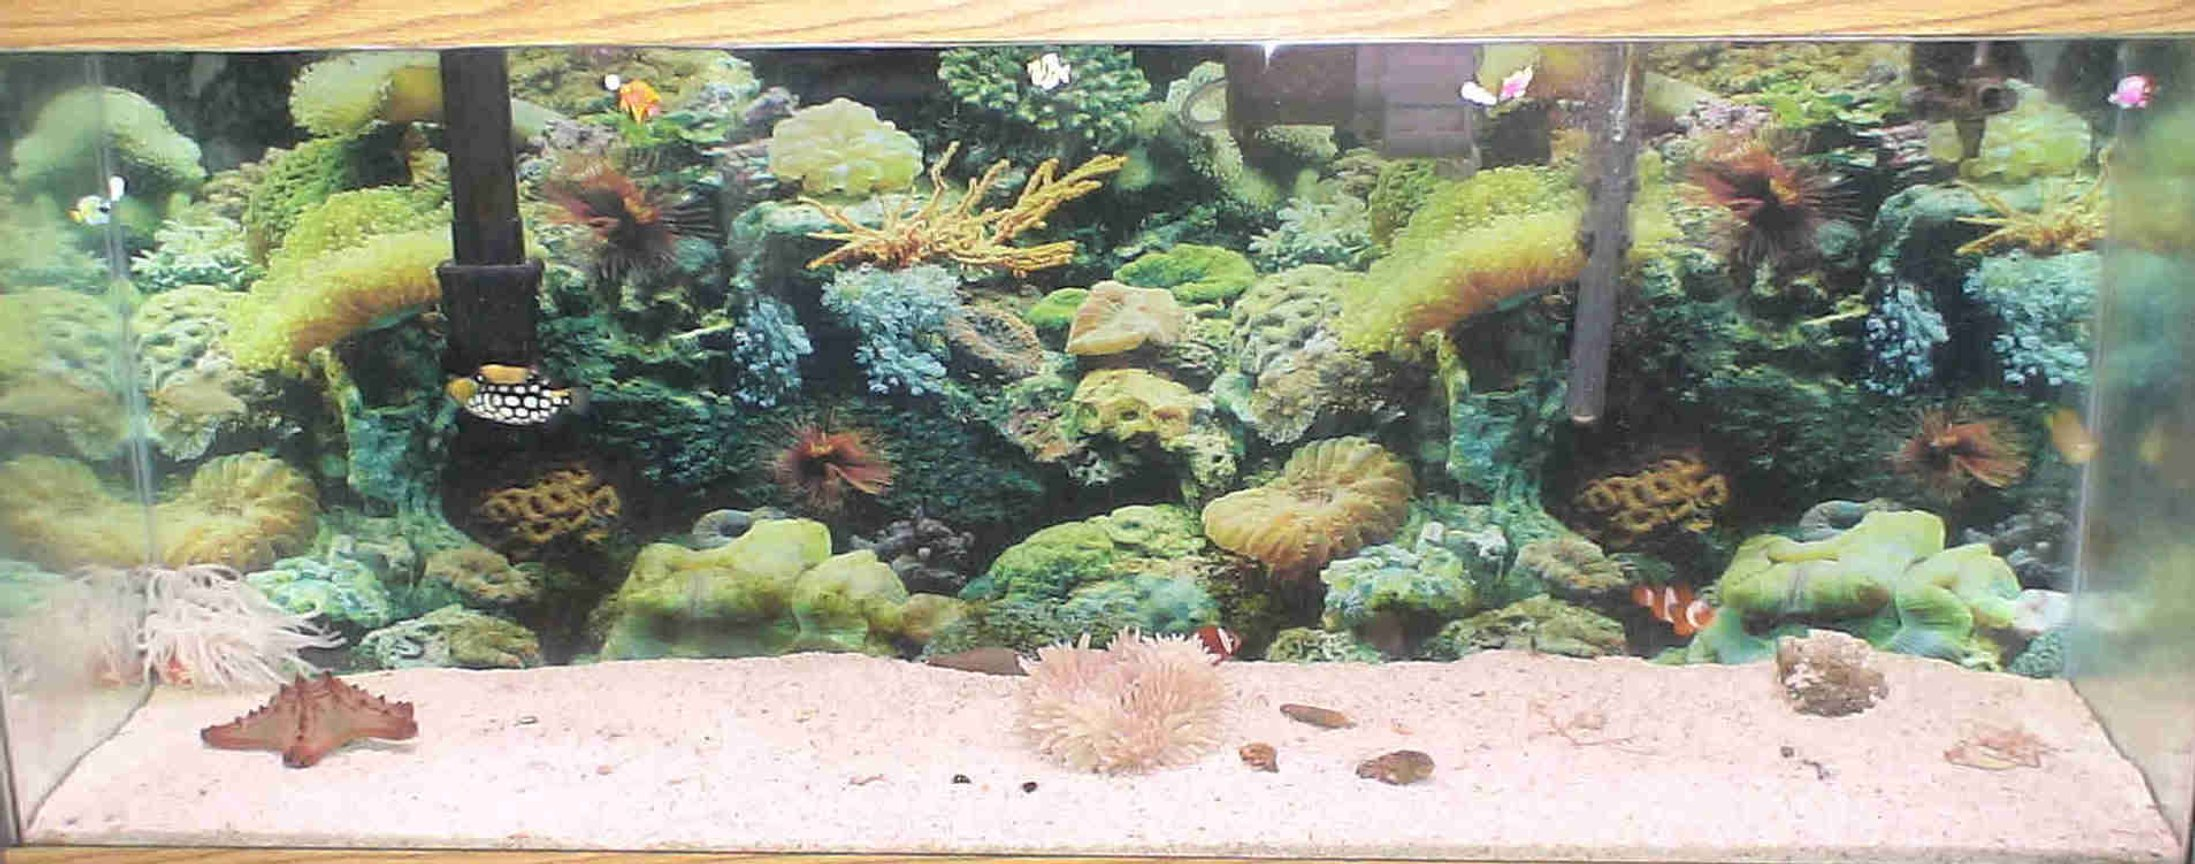 55 gallons saltwater fish tank (mostly fish, little/no live coral) - 55 GALLON SALTWATER FISH TANK